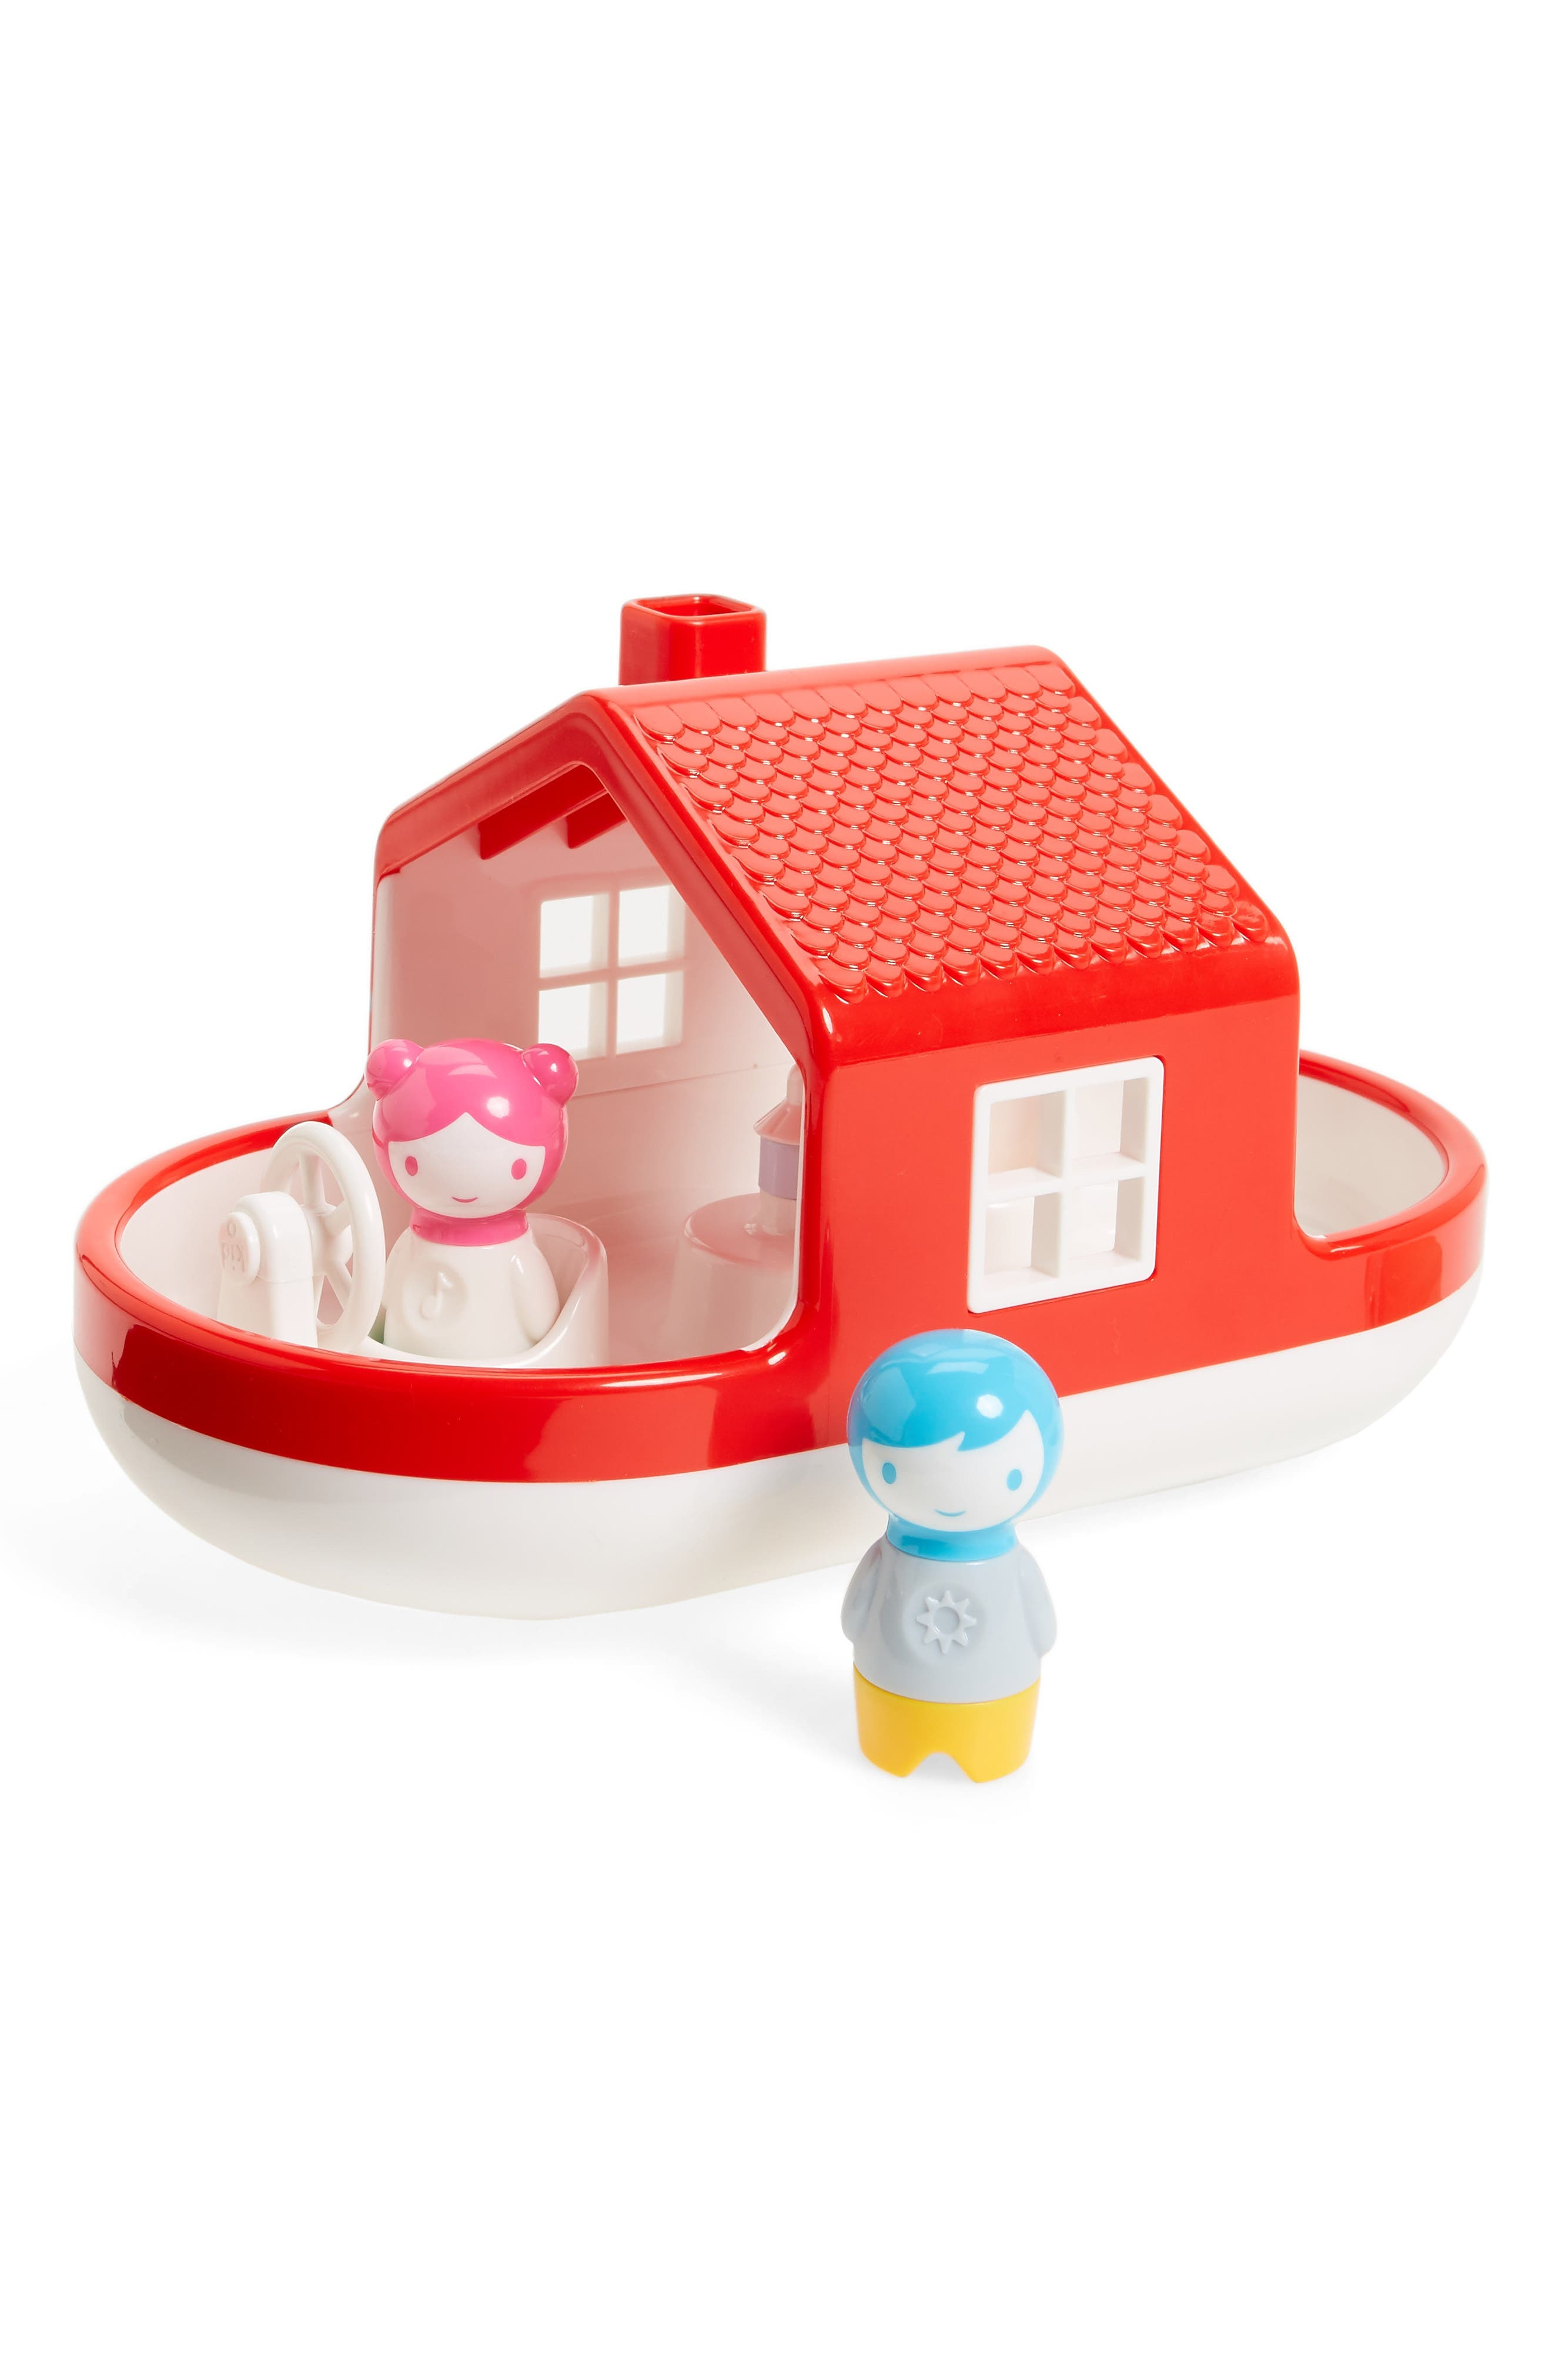 KID O Myland™ Floating Houseboat Toy